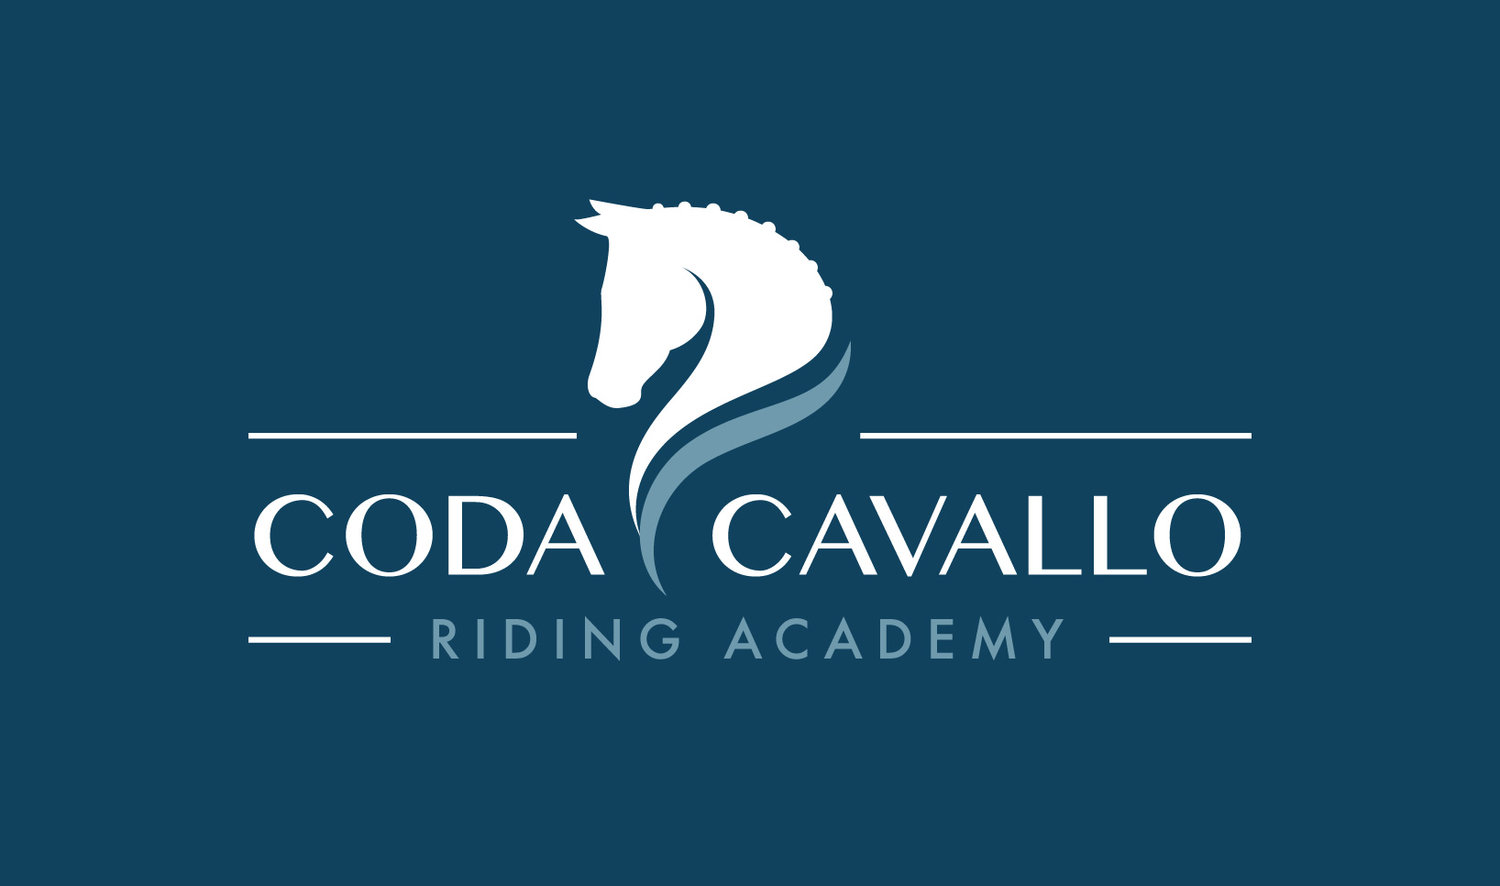 Coda Cavallo Riding Academy